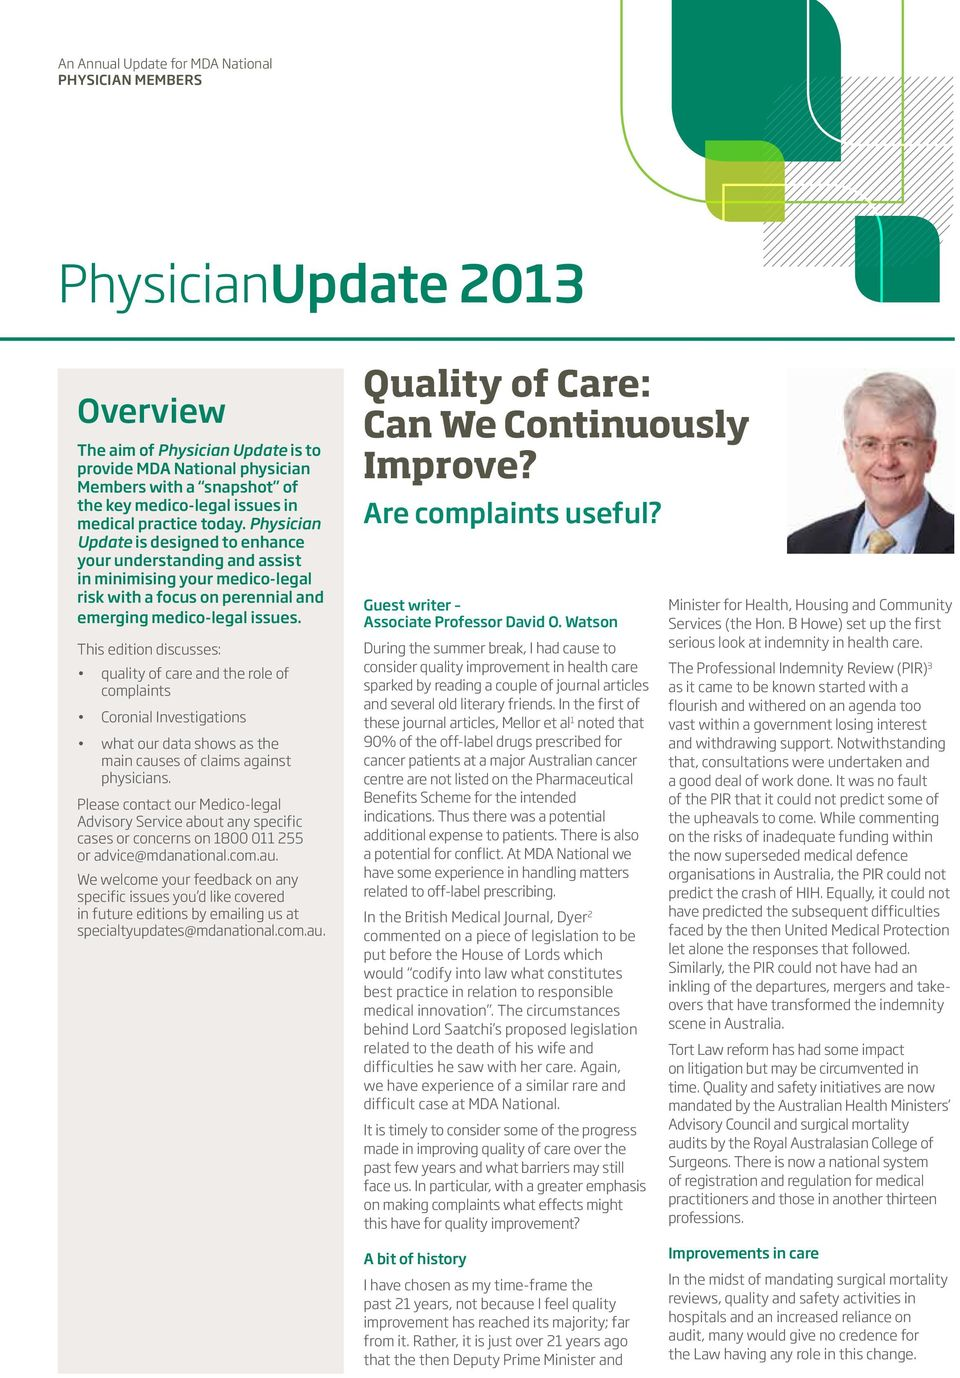 This edition discusses: quality of care and the role of complaints Coronial Investigations what our data shows as the main causes of claims against physicians.